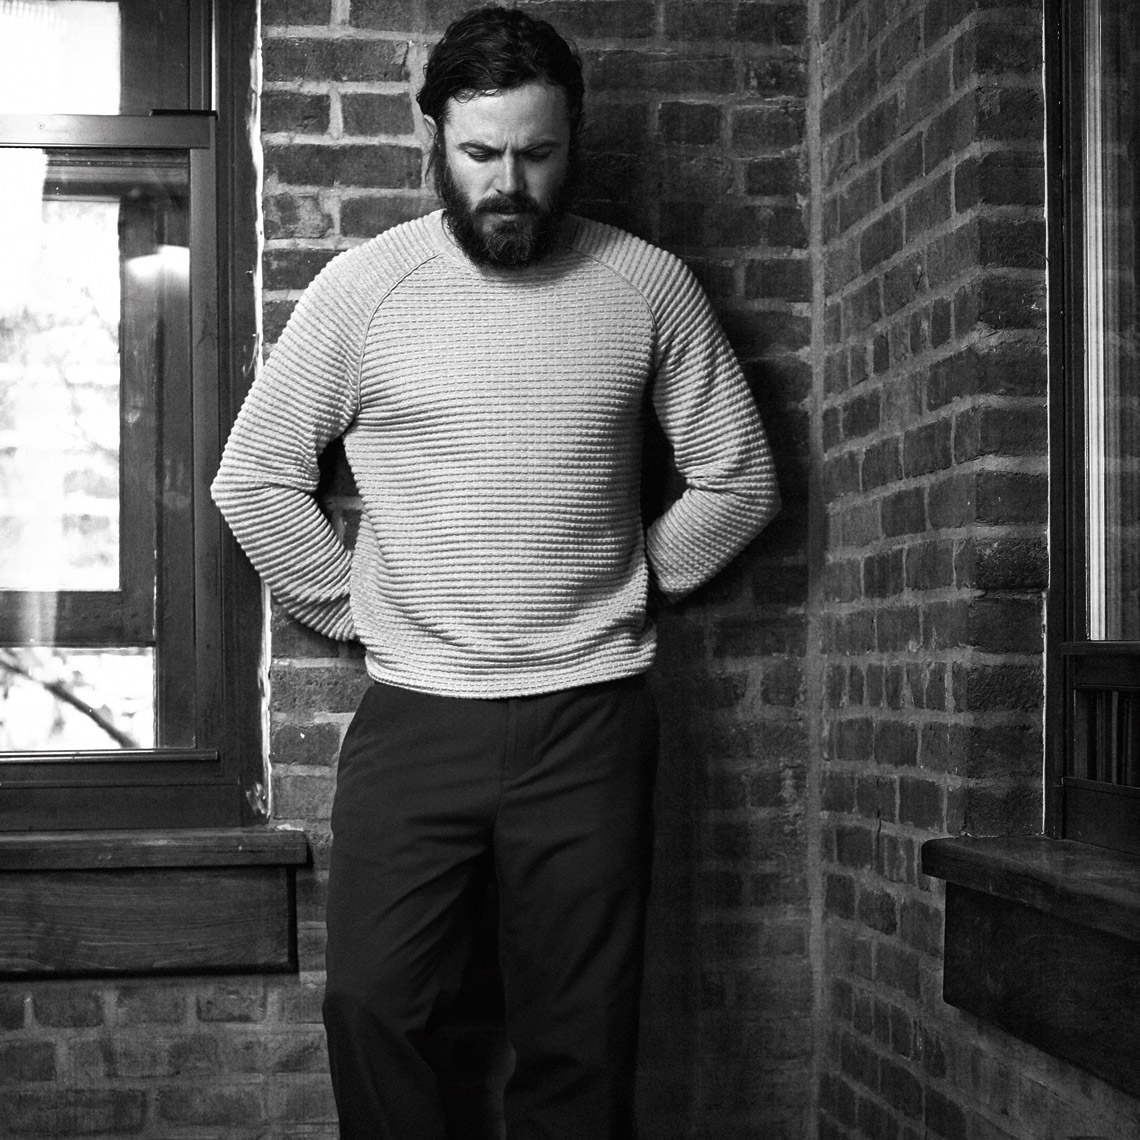 SHOT_02_20161129_CASEY_AFFLECK_ICON_EL_PAIS_035